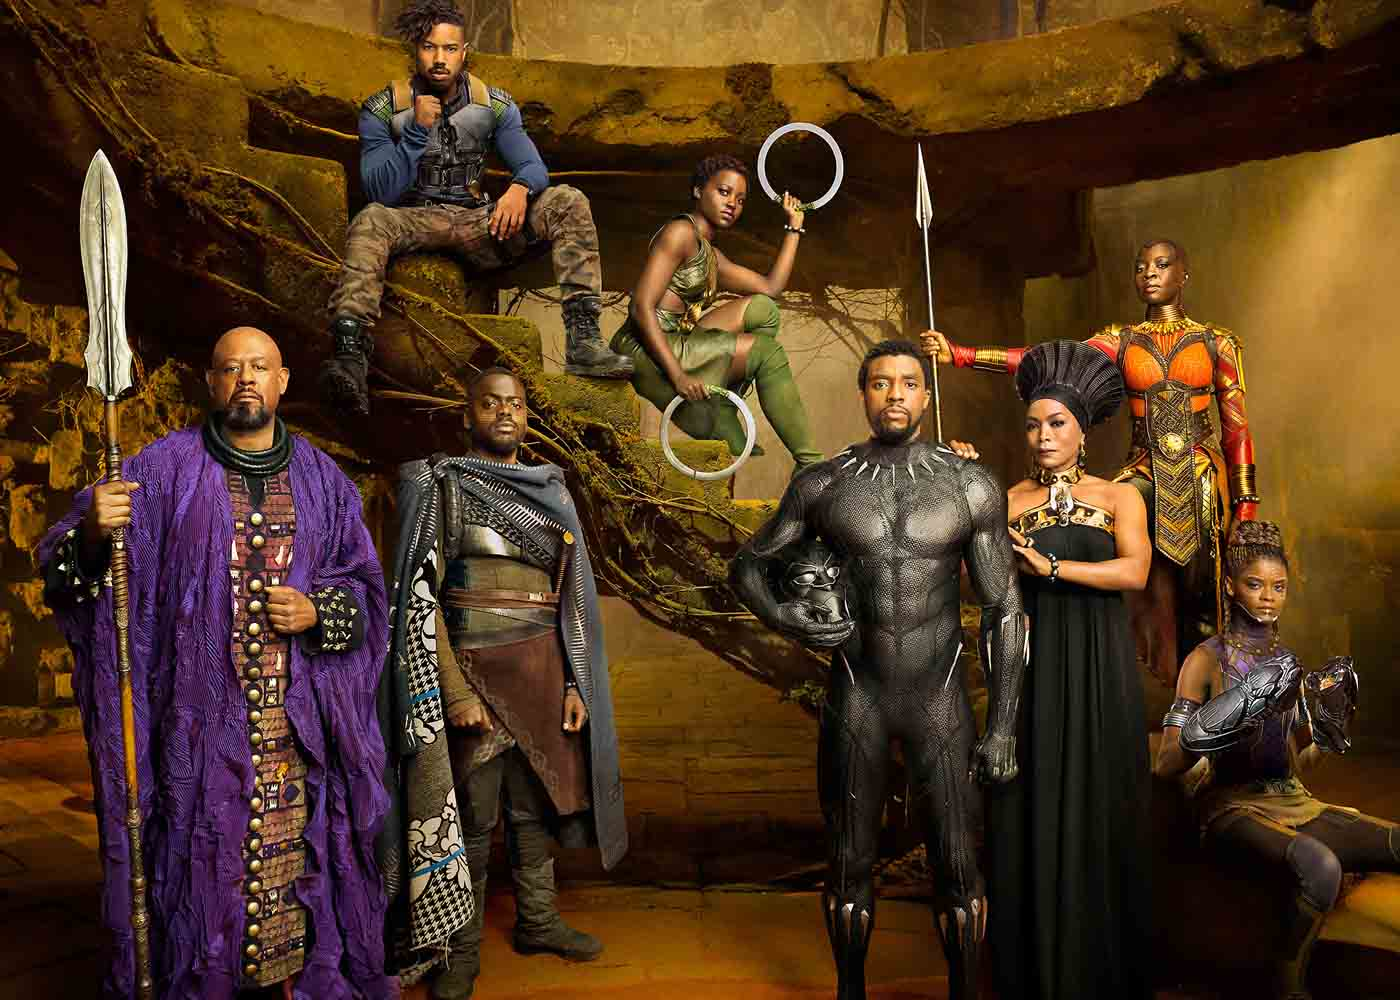 New Black Panther Images and Plot Details emerge